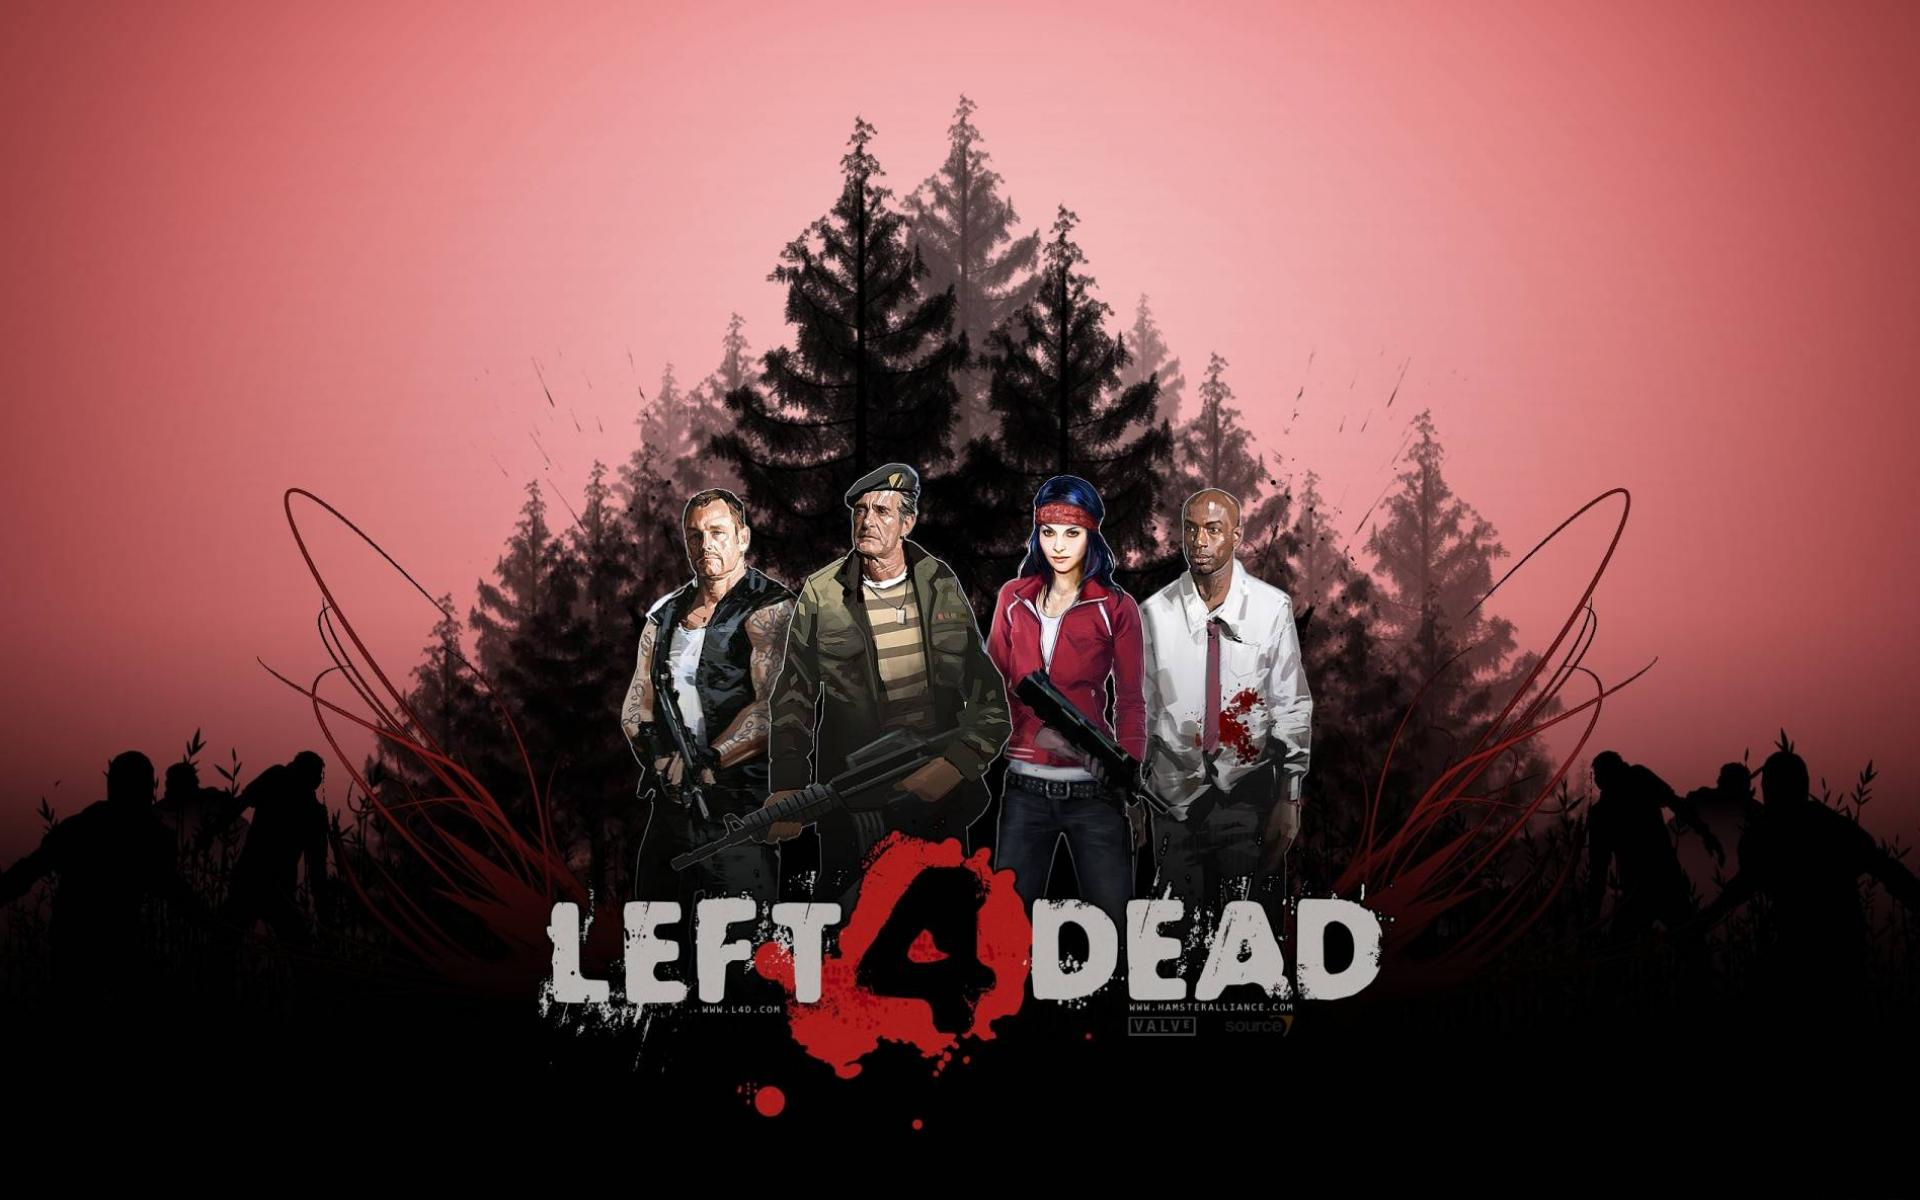 Zoey left for dead hinti video pornos thumbs